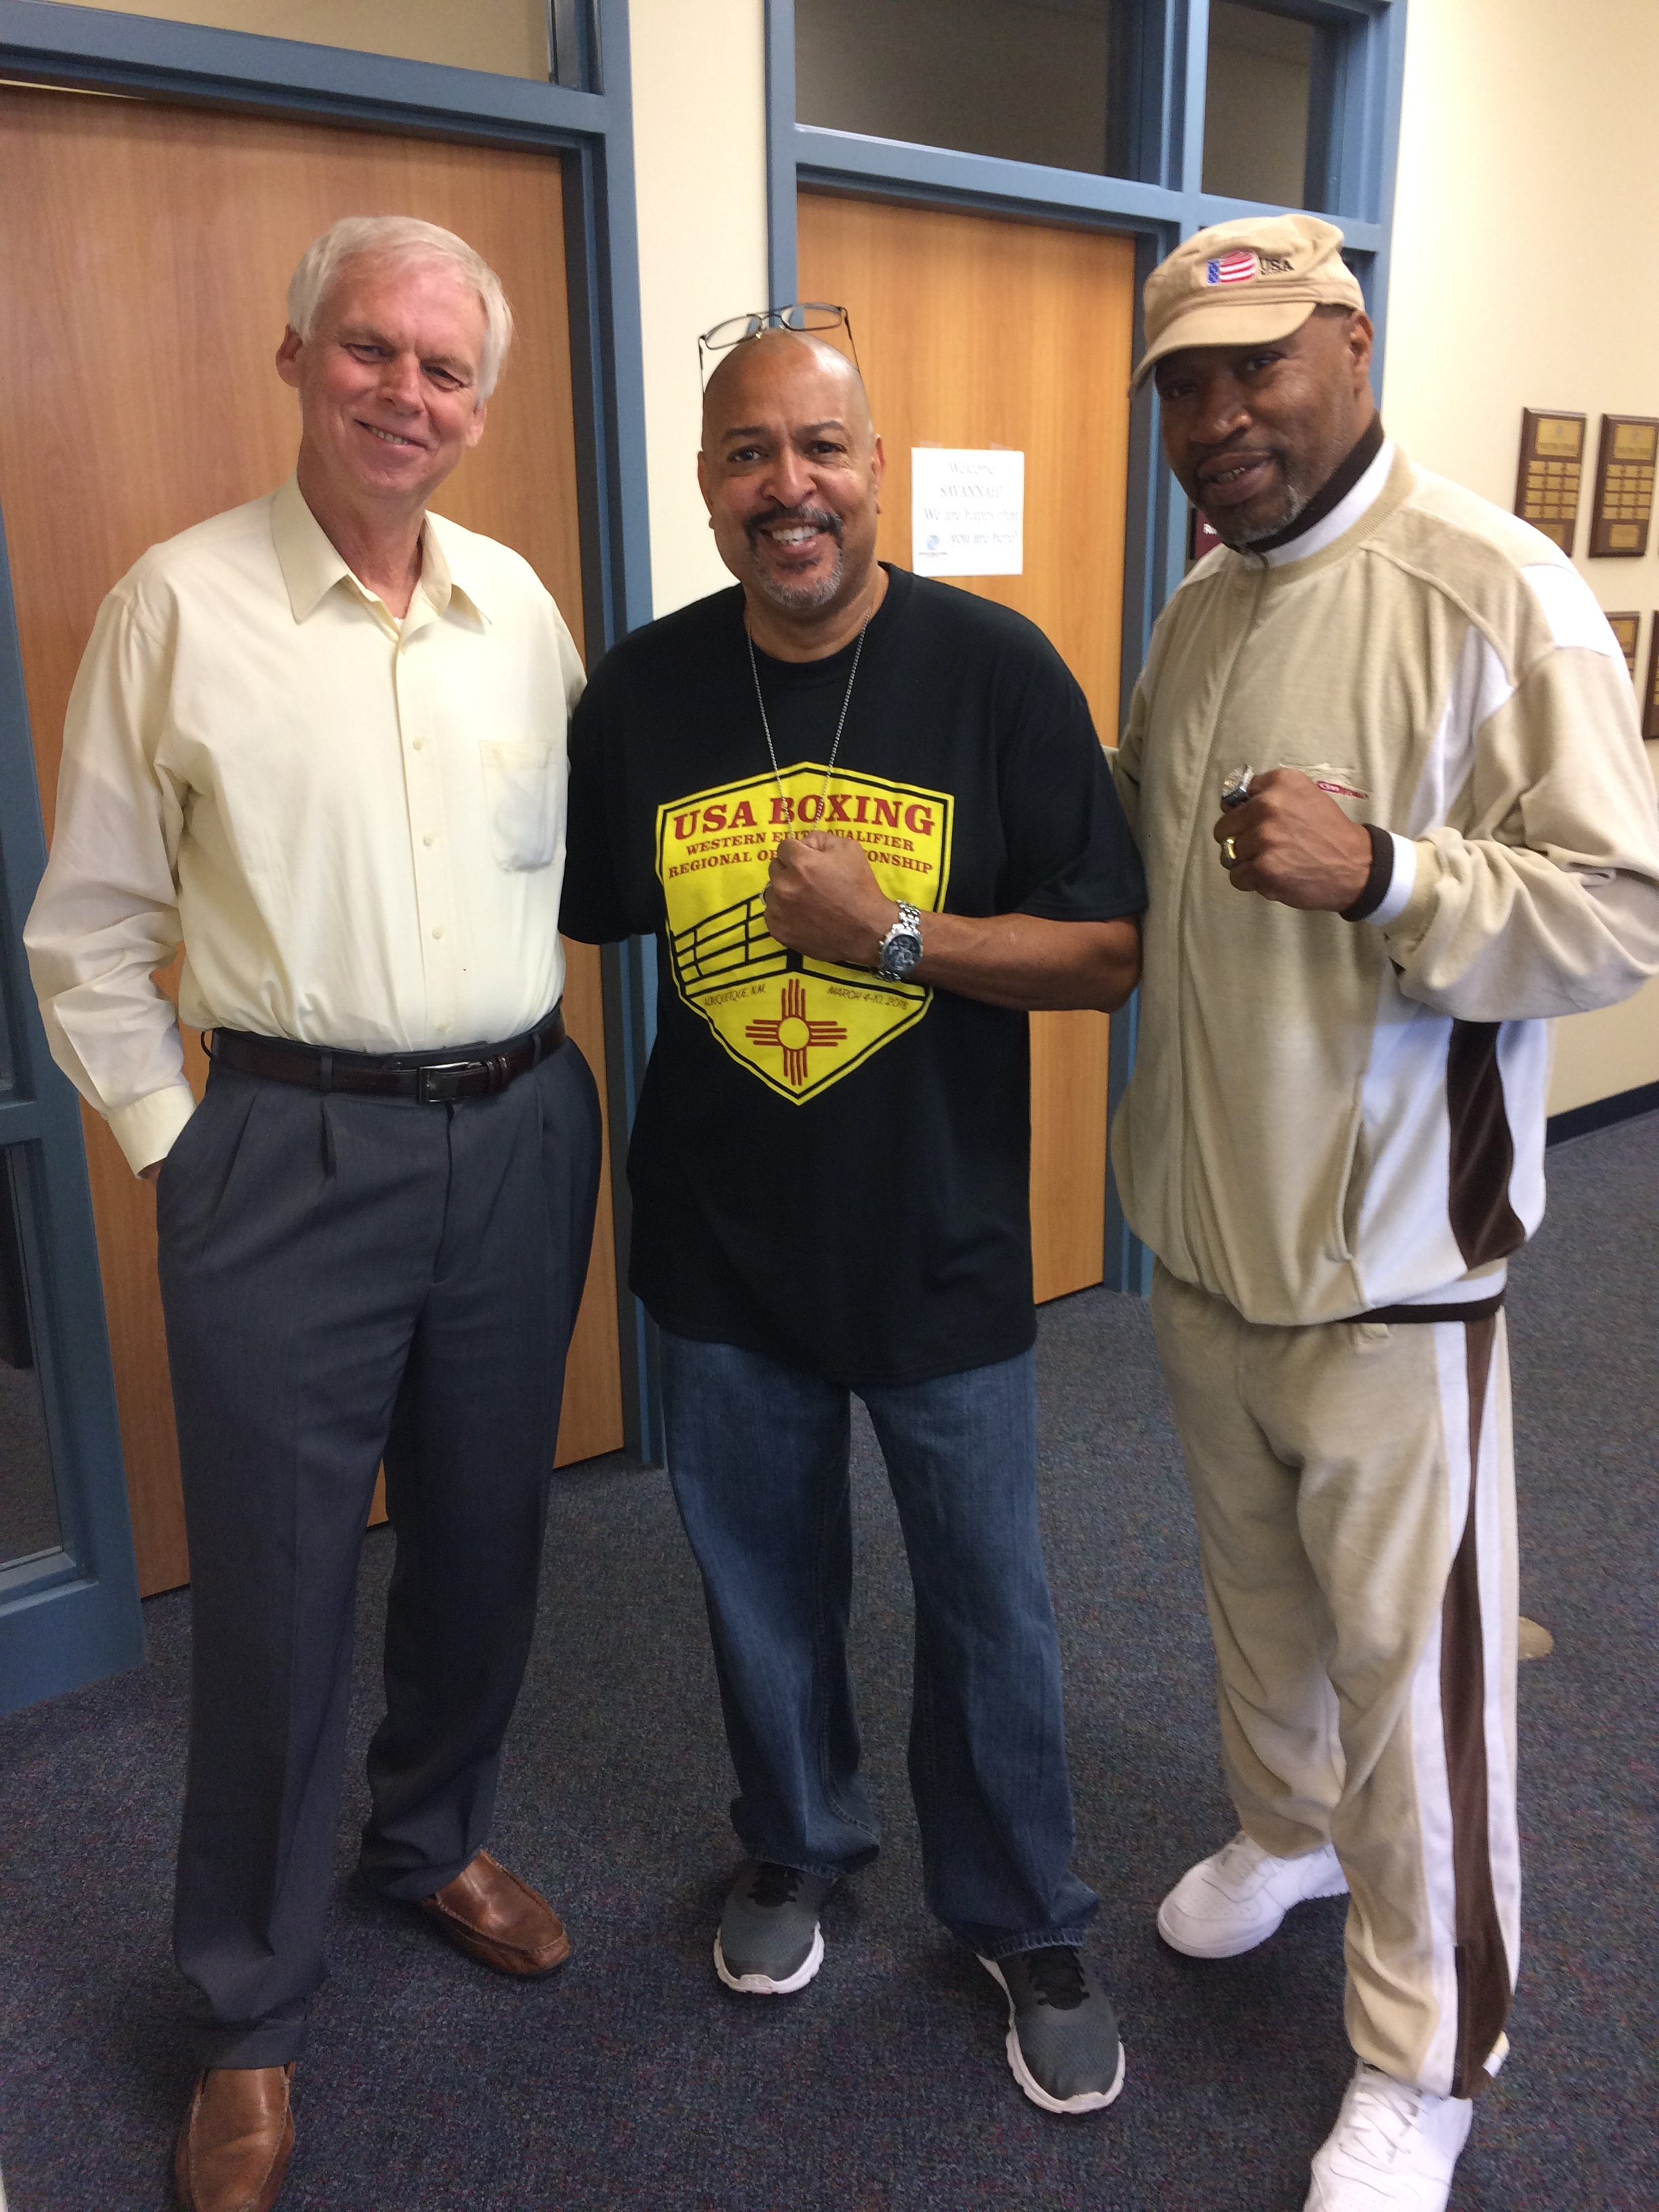 BGCS Executive Director Pat Gartland, Coach Smitty (Smitty's Boxing Gym), and boxing legend Ray Mercer.